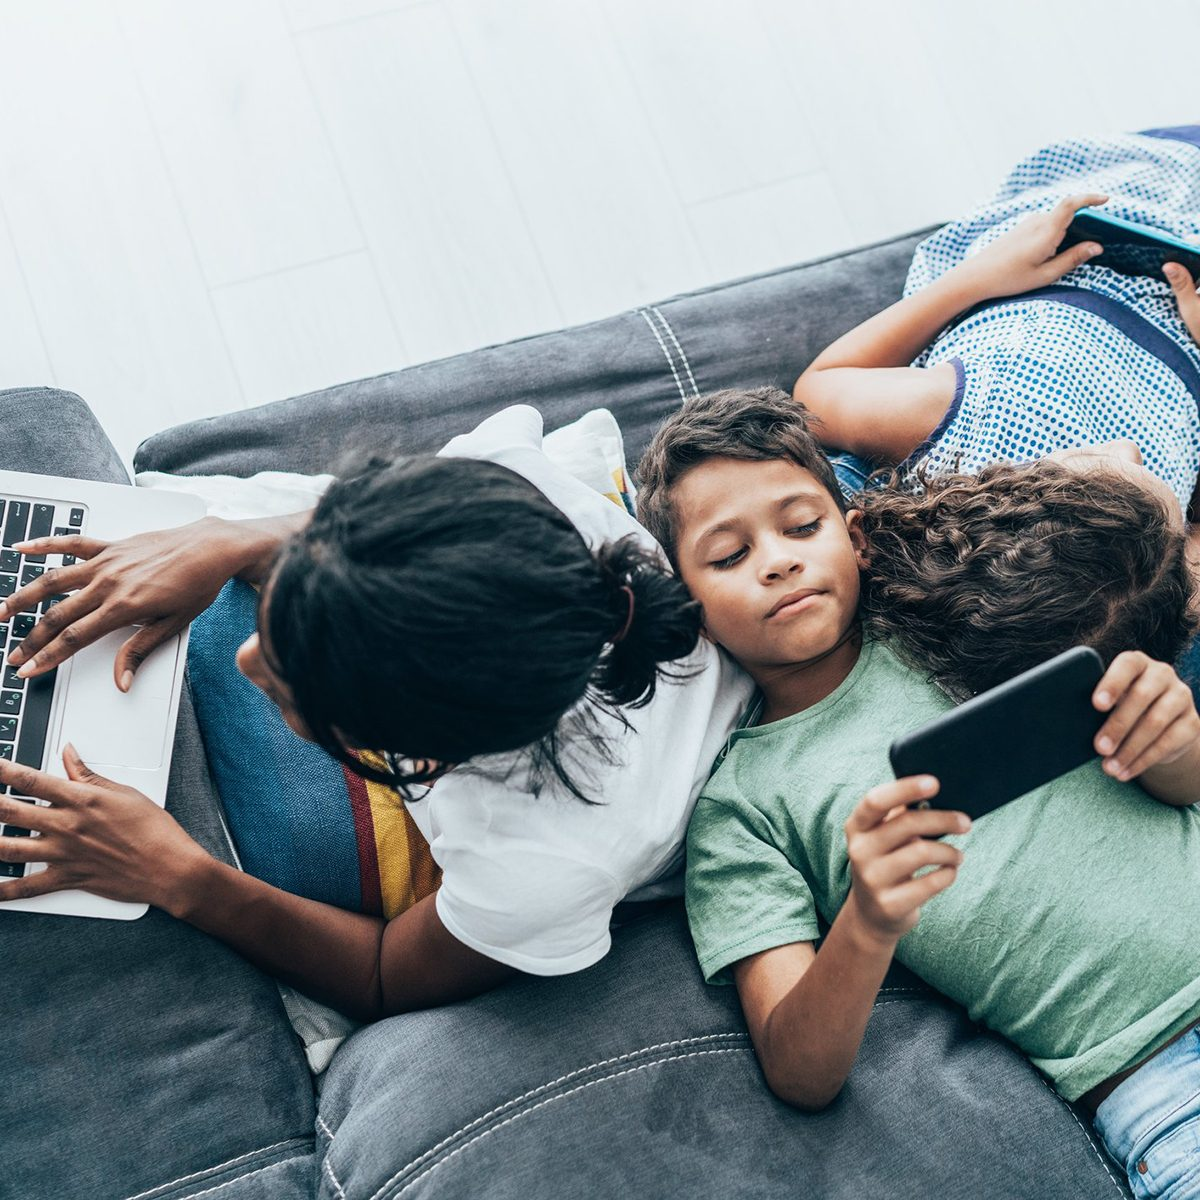 Young children together on couch playing on computers and phones